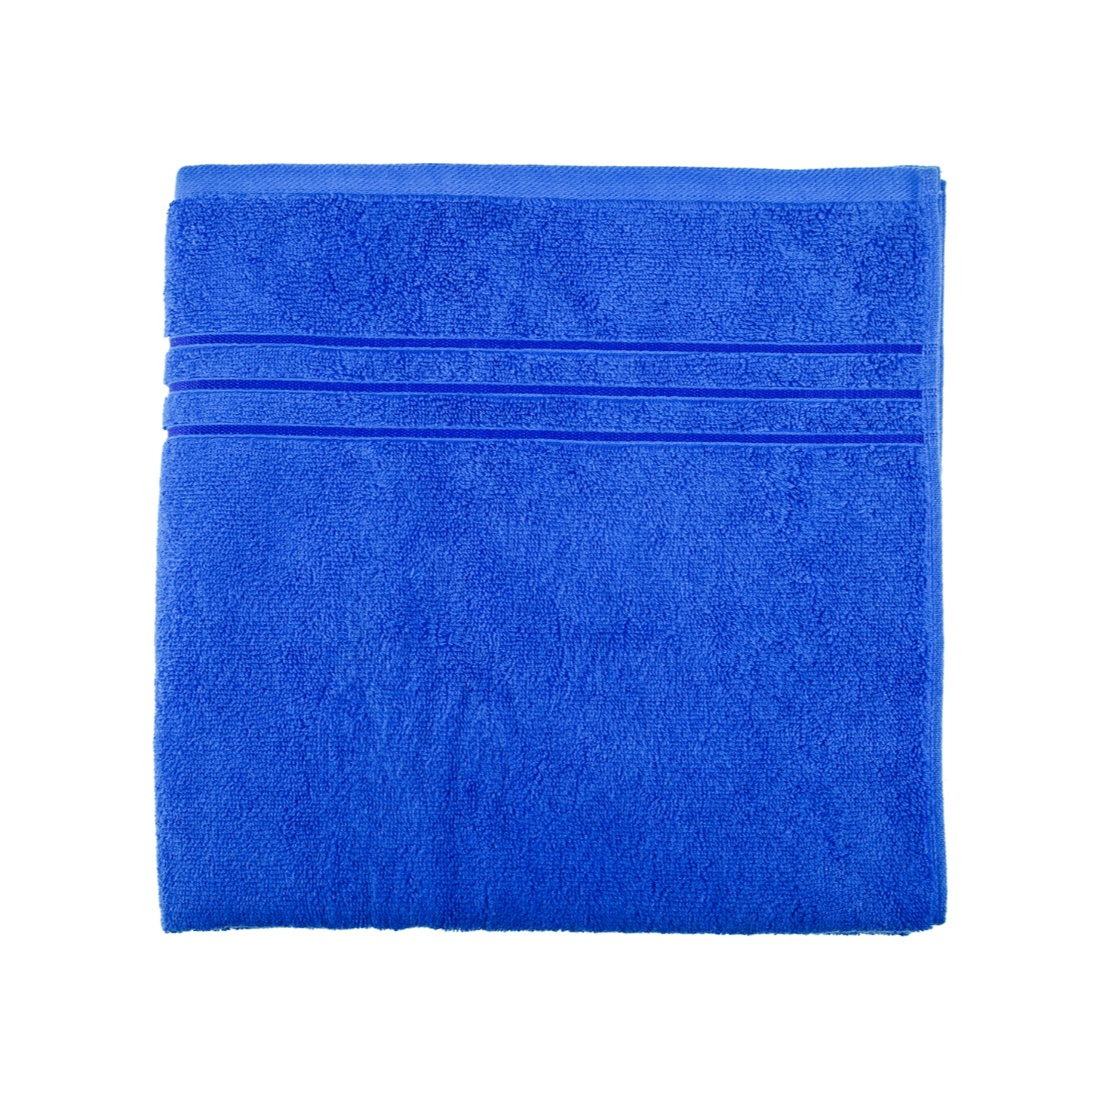 Bath Towel 70X140 Nora Blue Combed Cotton Bath Towels in Blue Colour by Living Essence